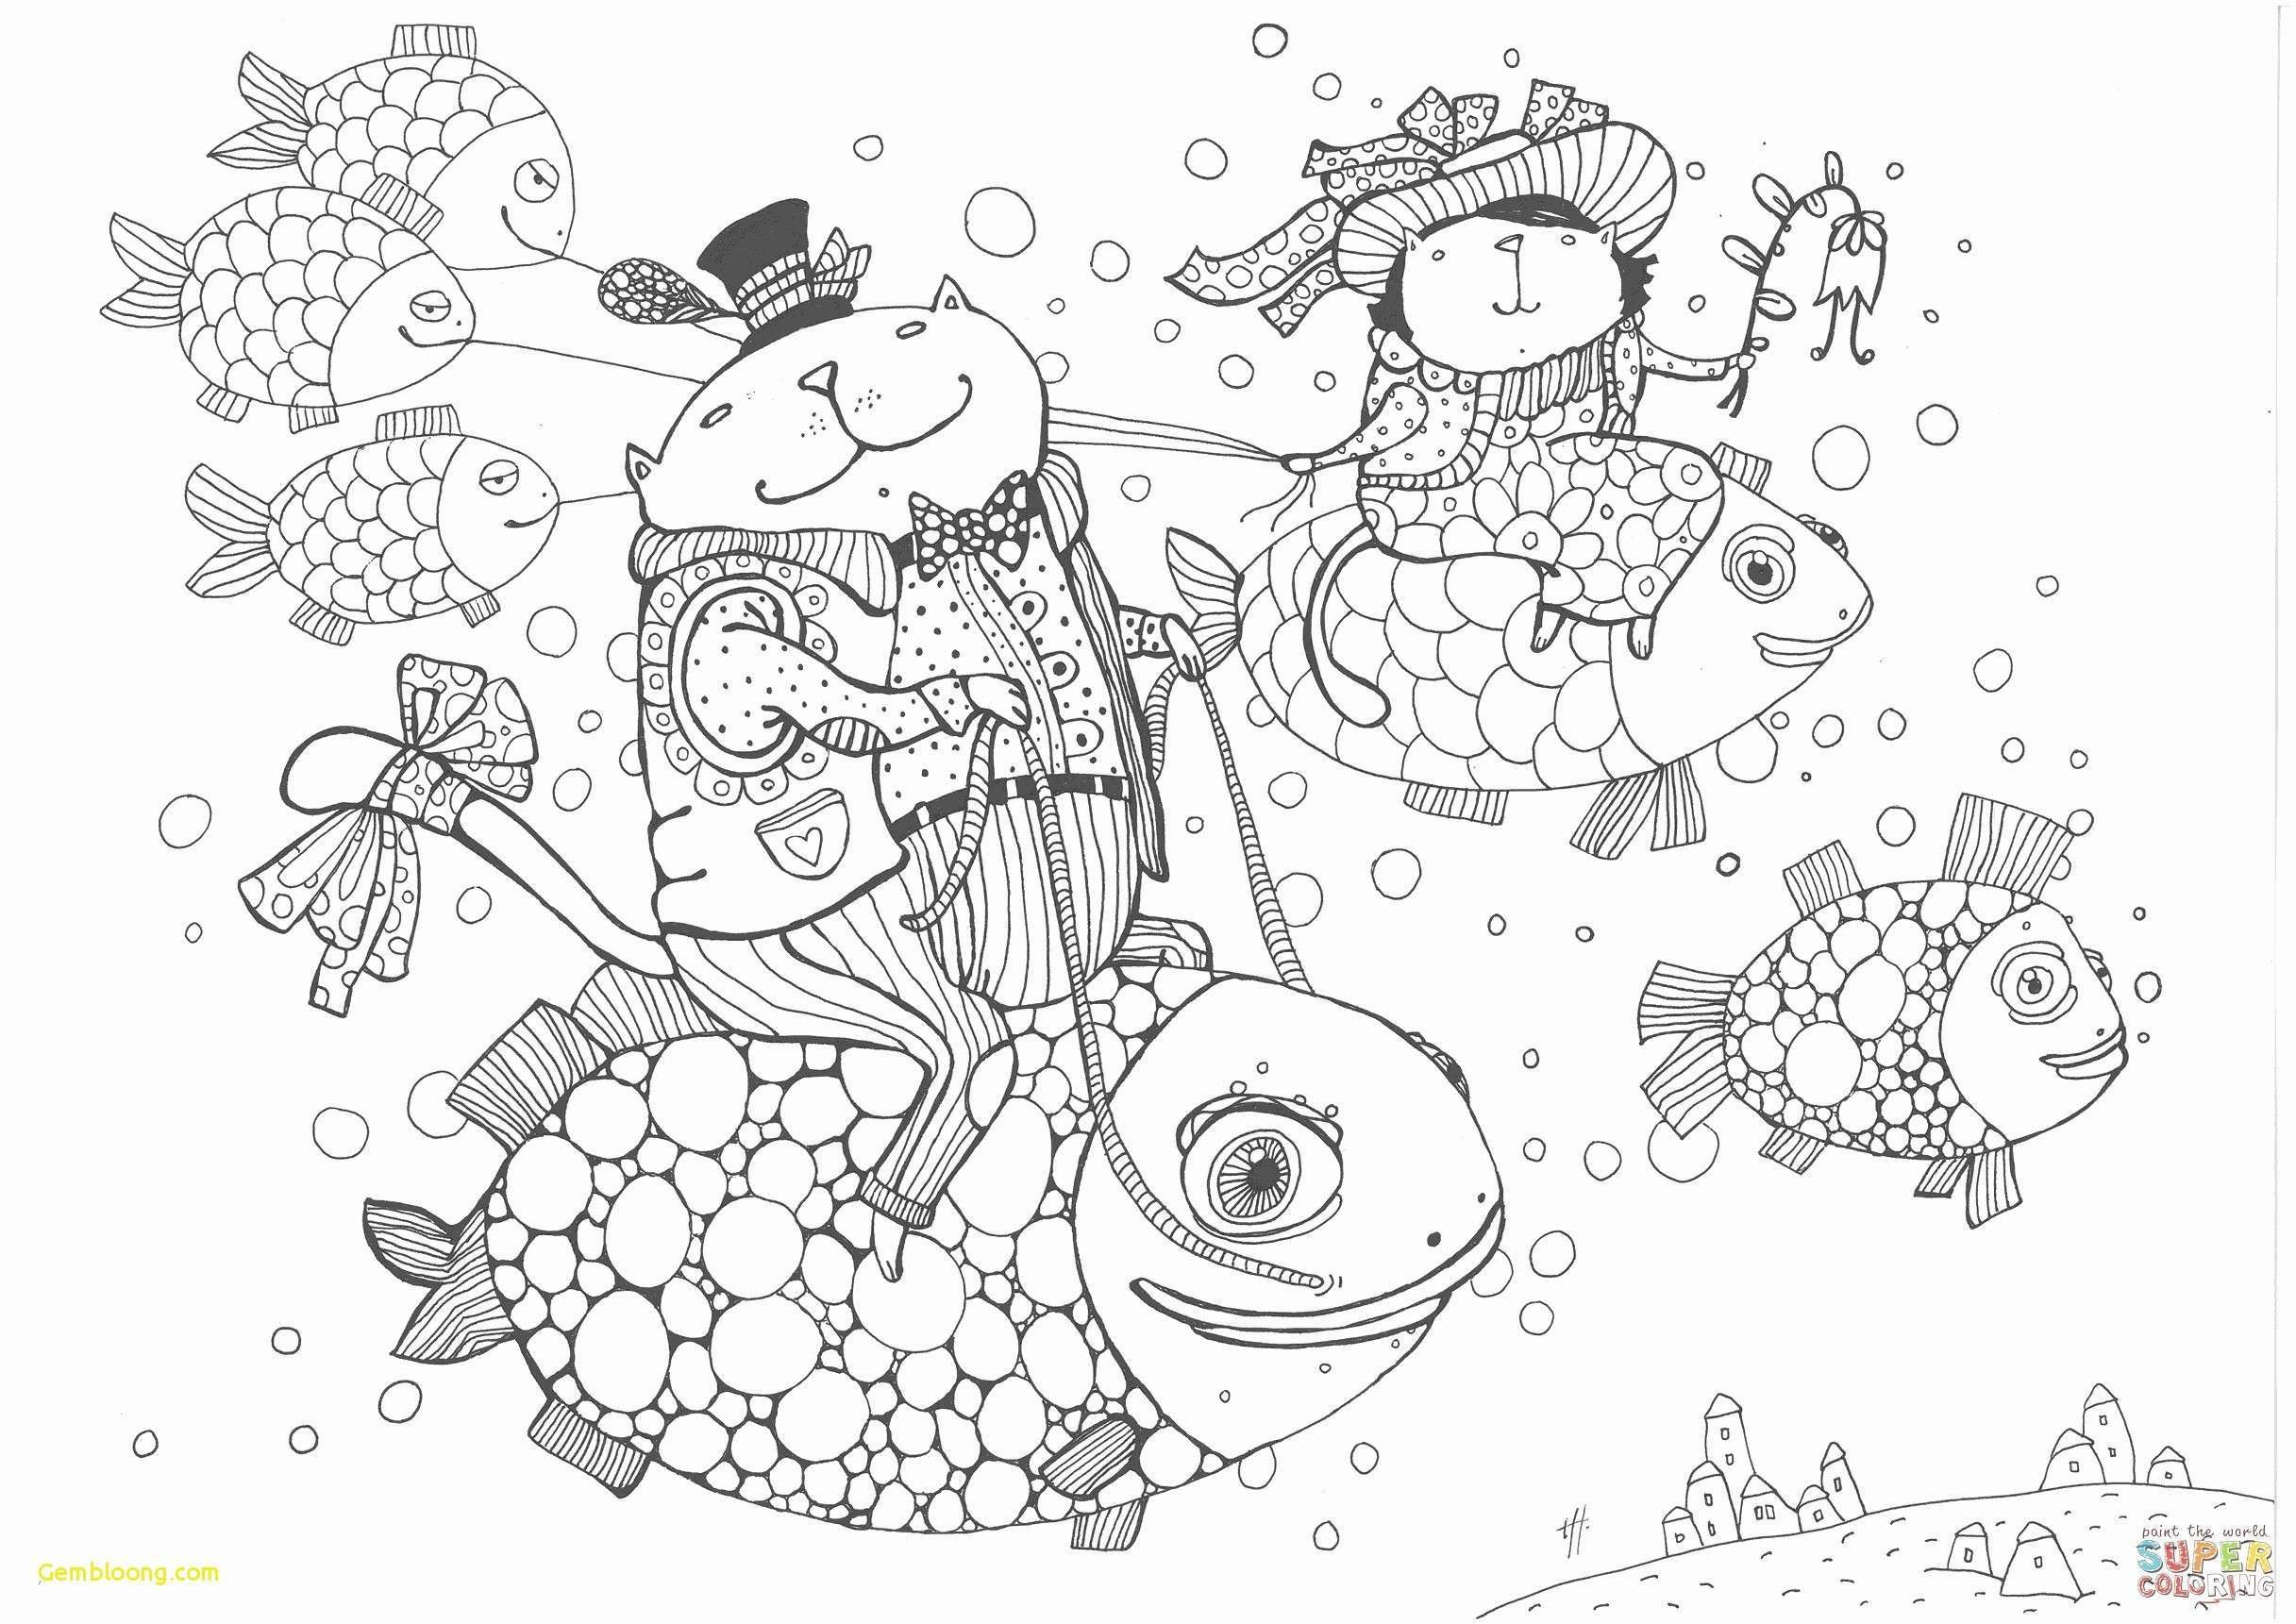 christmas coloring pages for kids Download-Elsa Christmas Coloring Pages Printable Malvorlagen Frisch Malvorlagen Monster 18-a